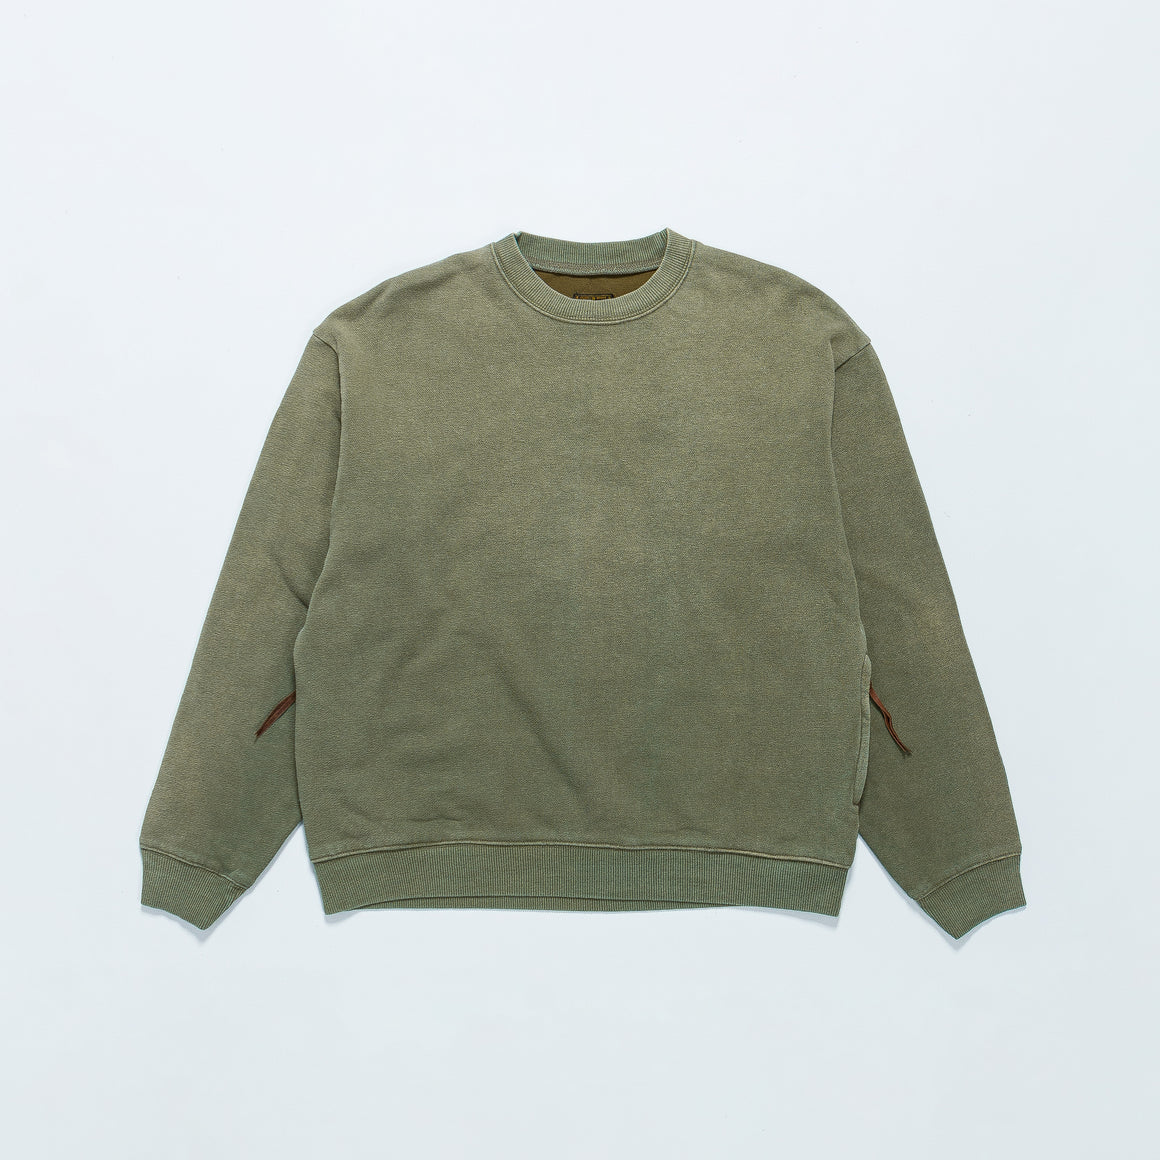 Kapital - Fleecy Knit Bivouac Big Sweat - Khaki - Up There